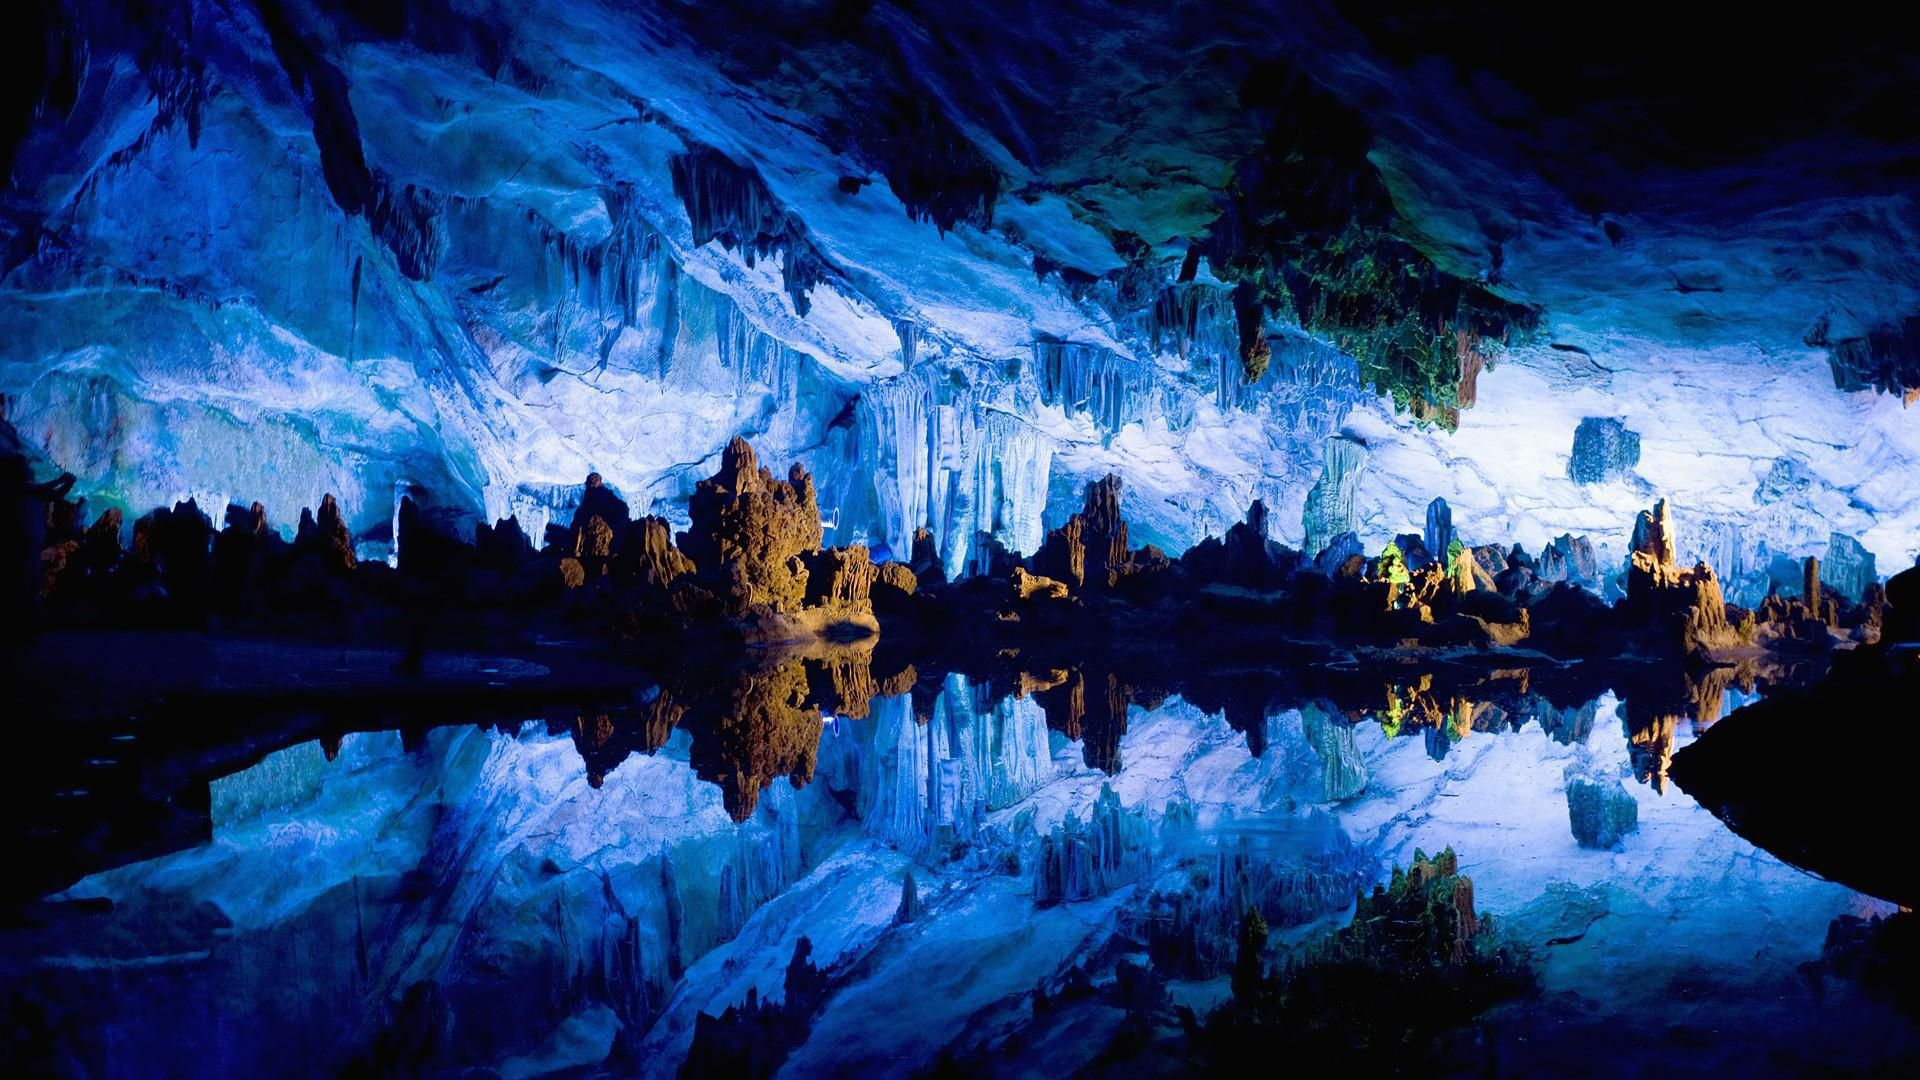 Illuminated Caves